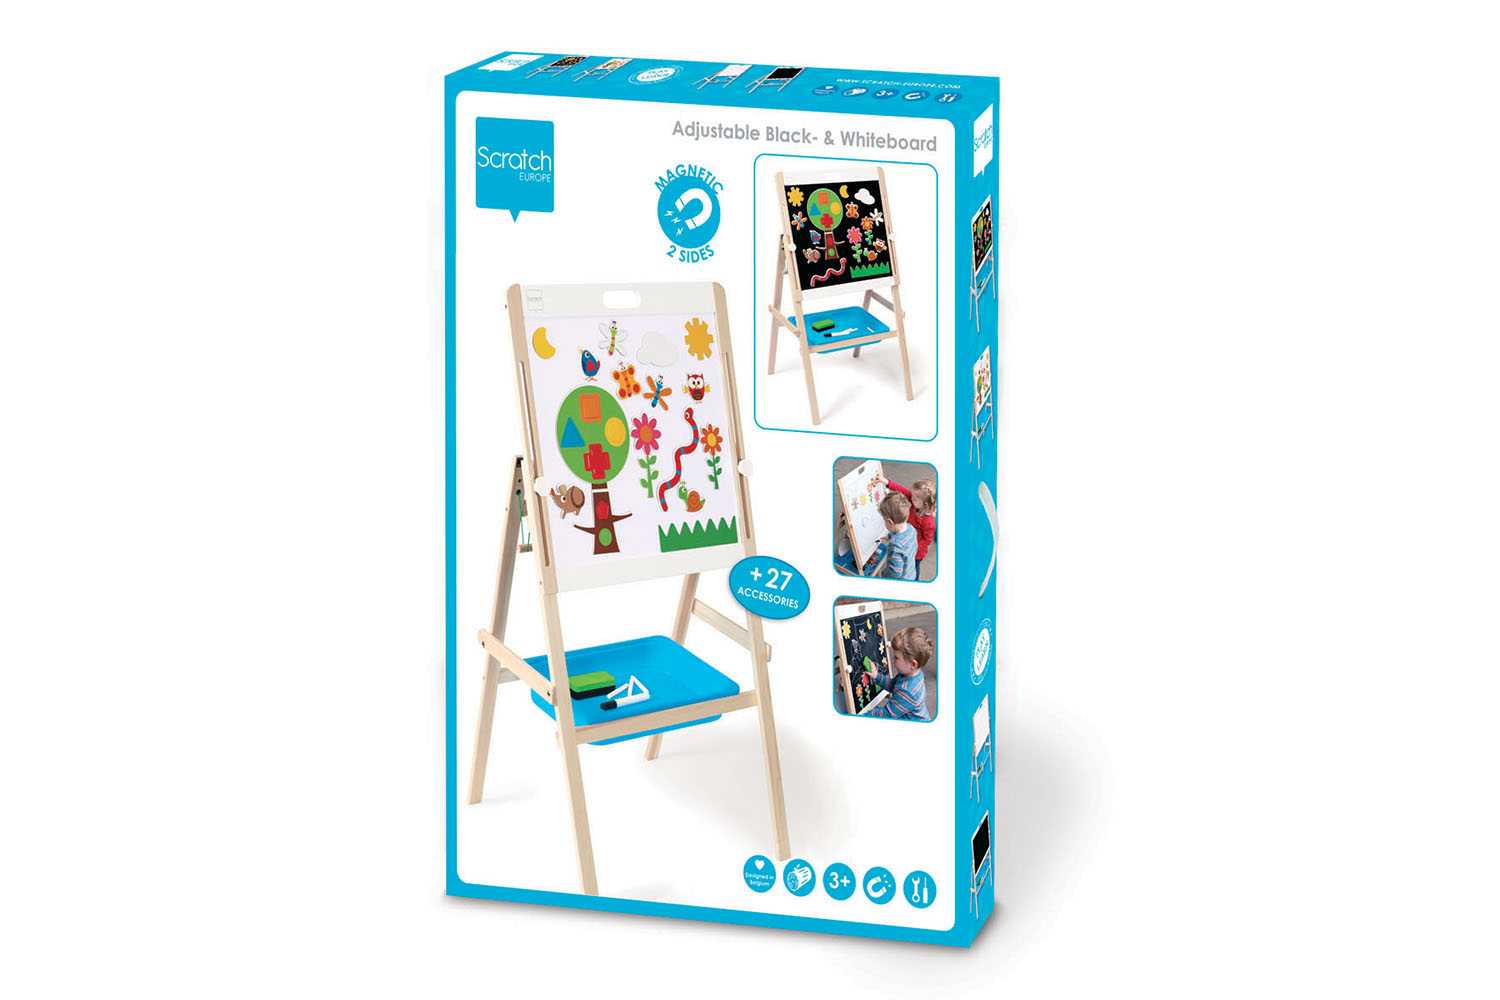 Scratch - Easel 2-sided Black and white board